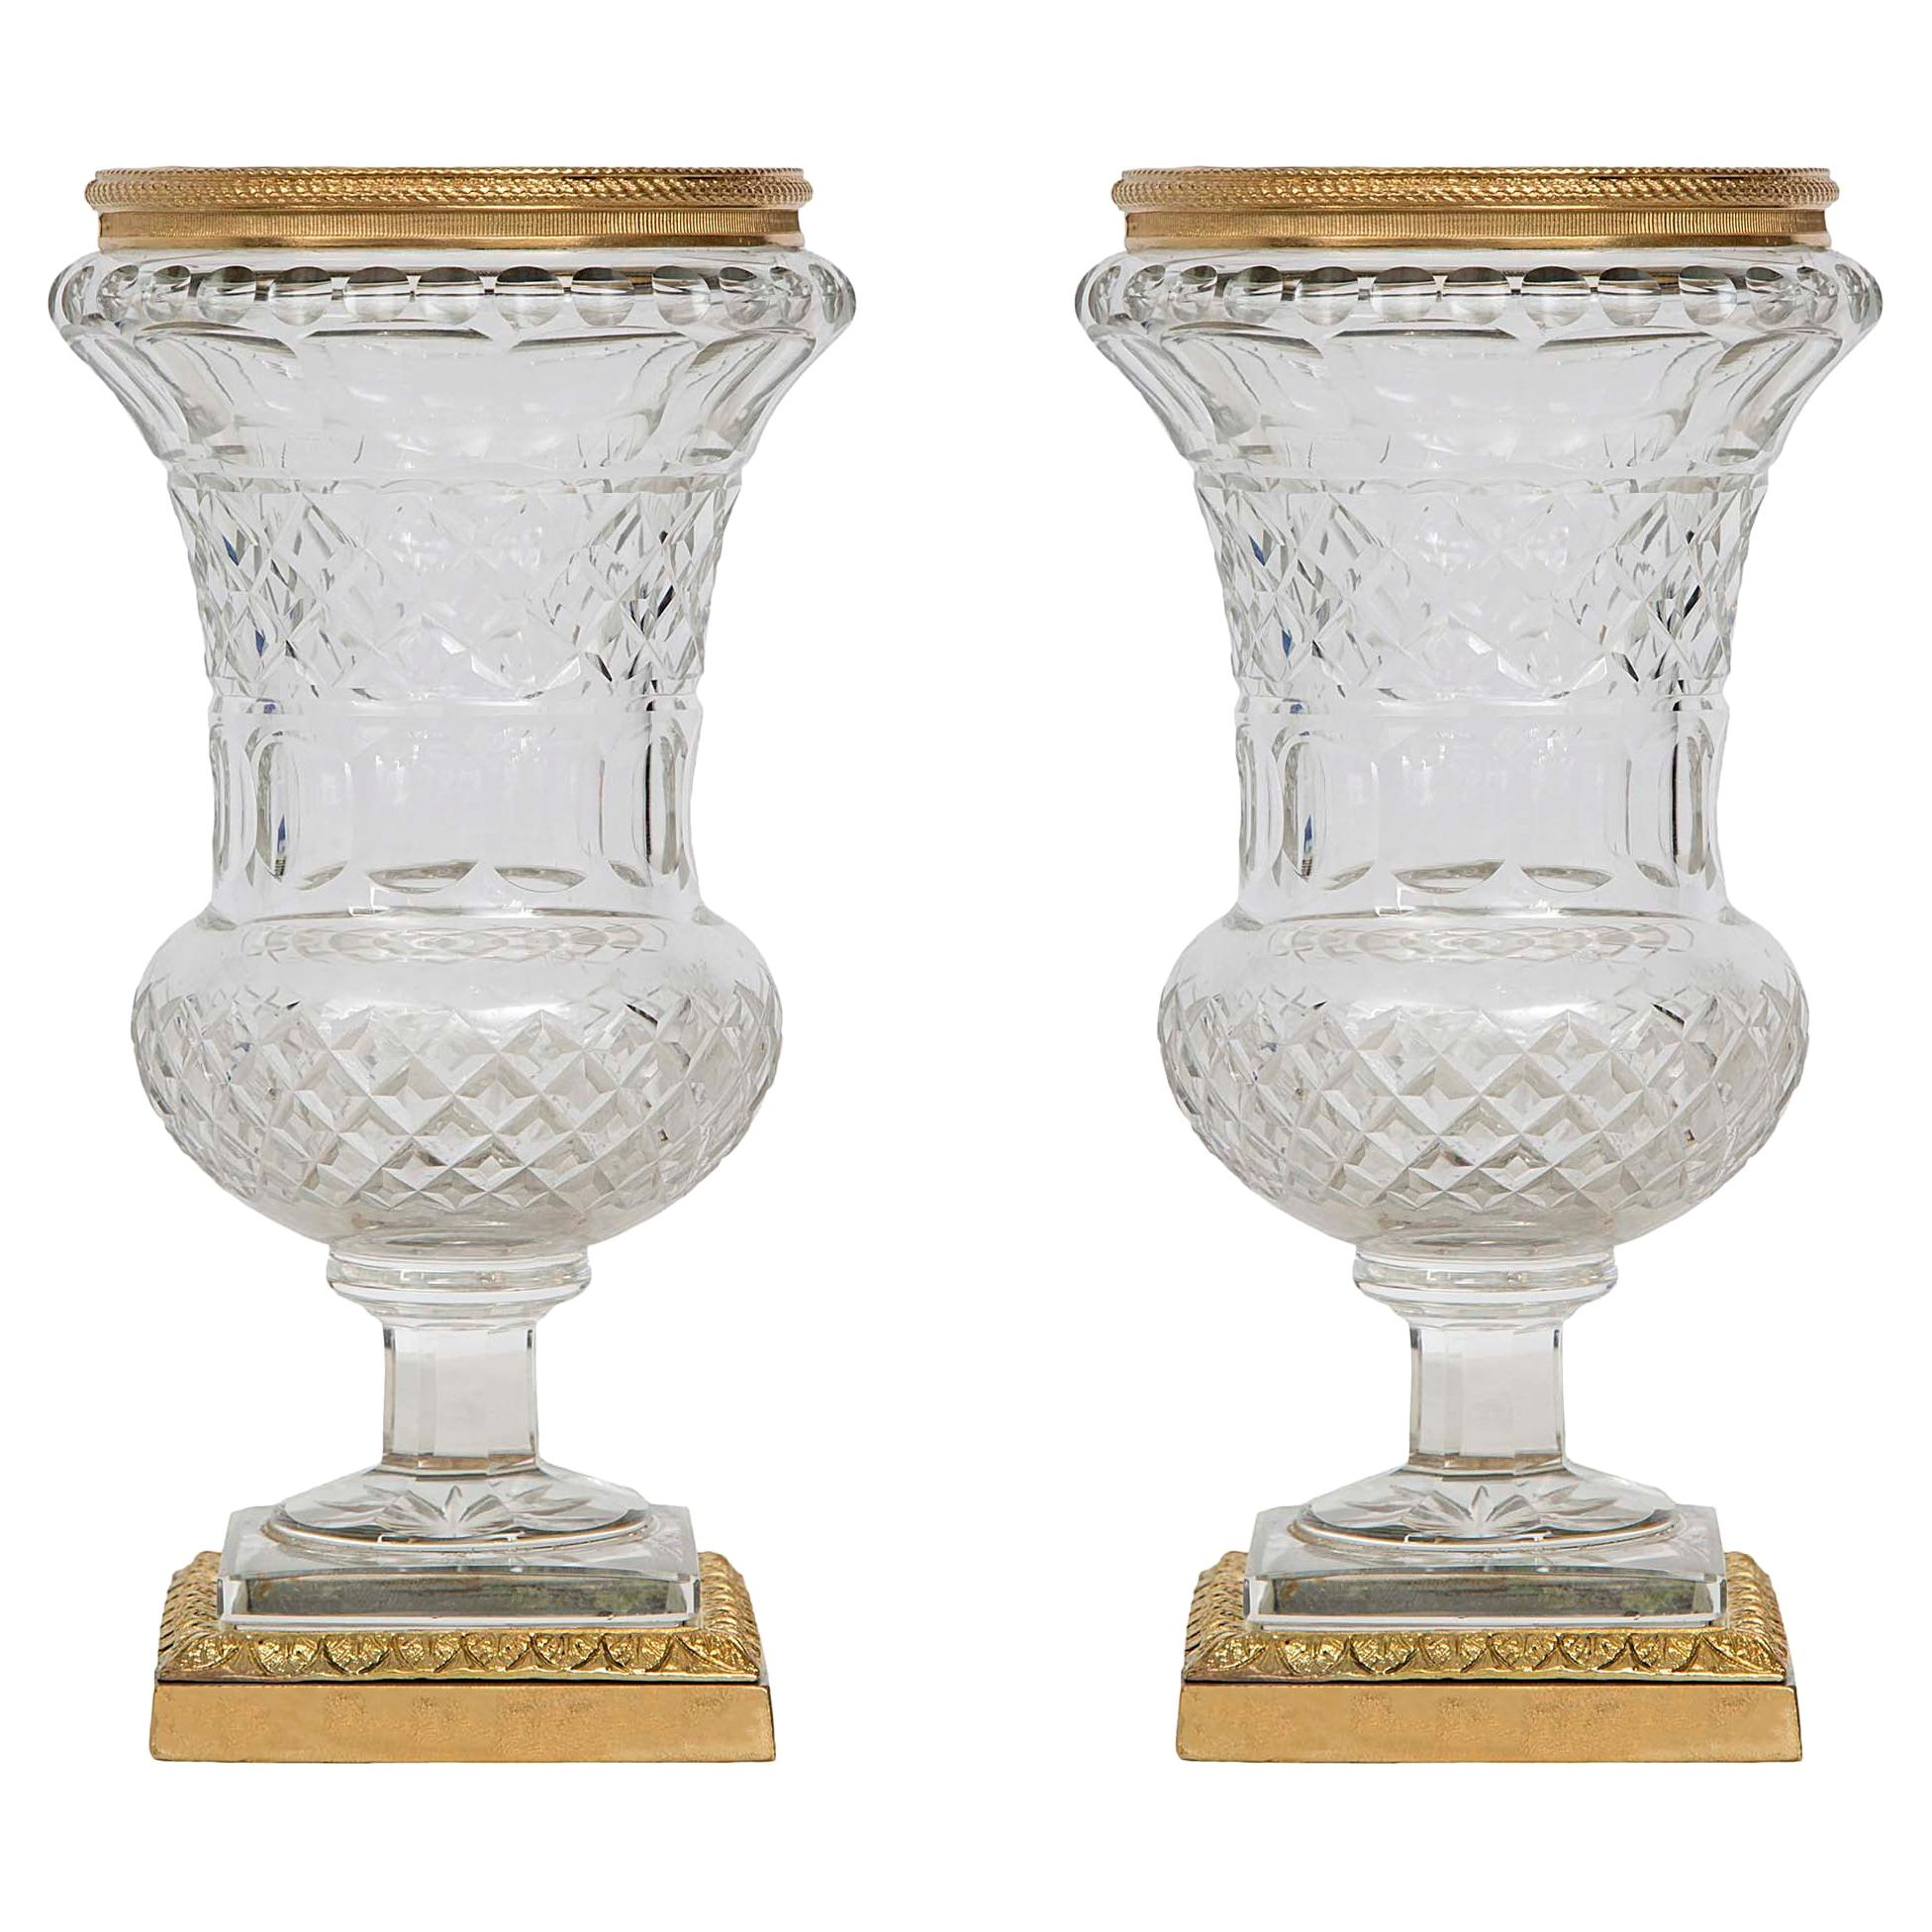 Pair of Late 19th Century Louis XVI Style Crystal and Ormolu-Mounted Vases